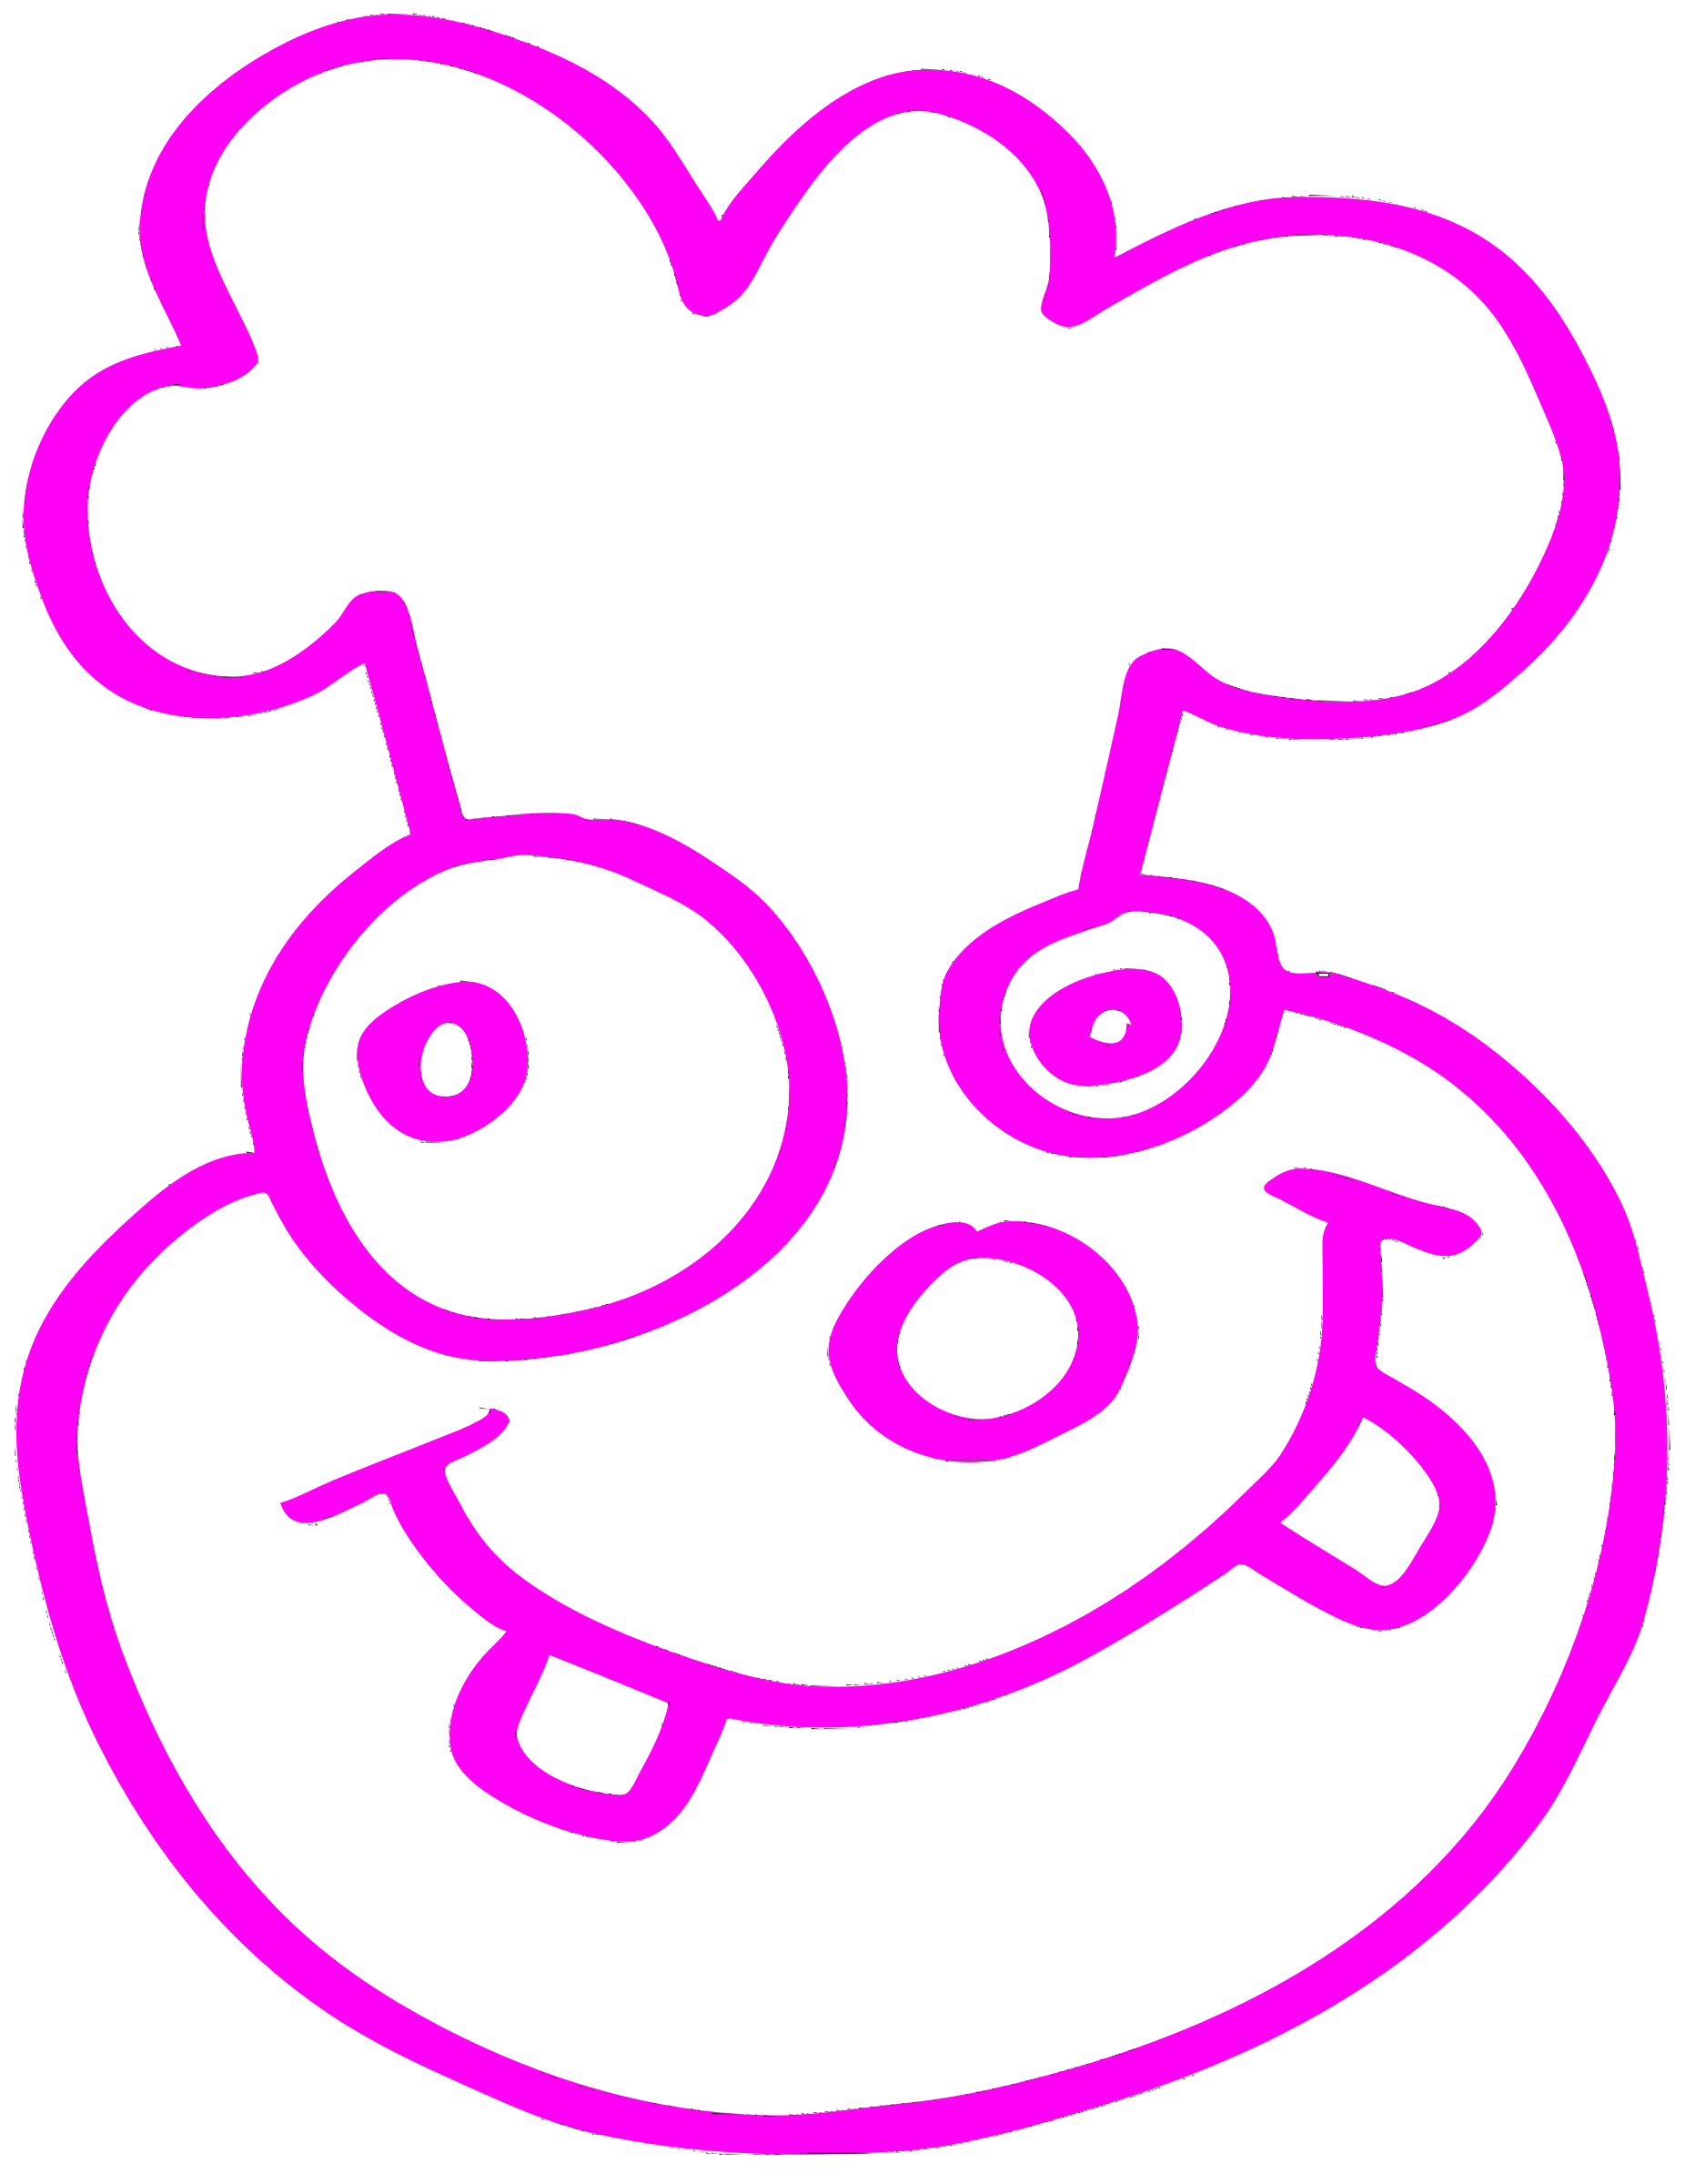 Pink Funny Cartoon Face by IslandVibz